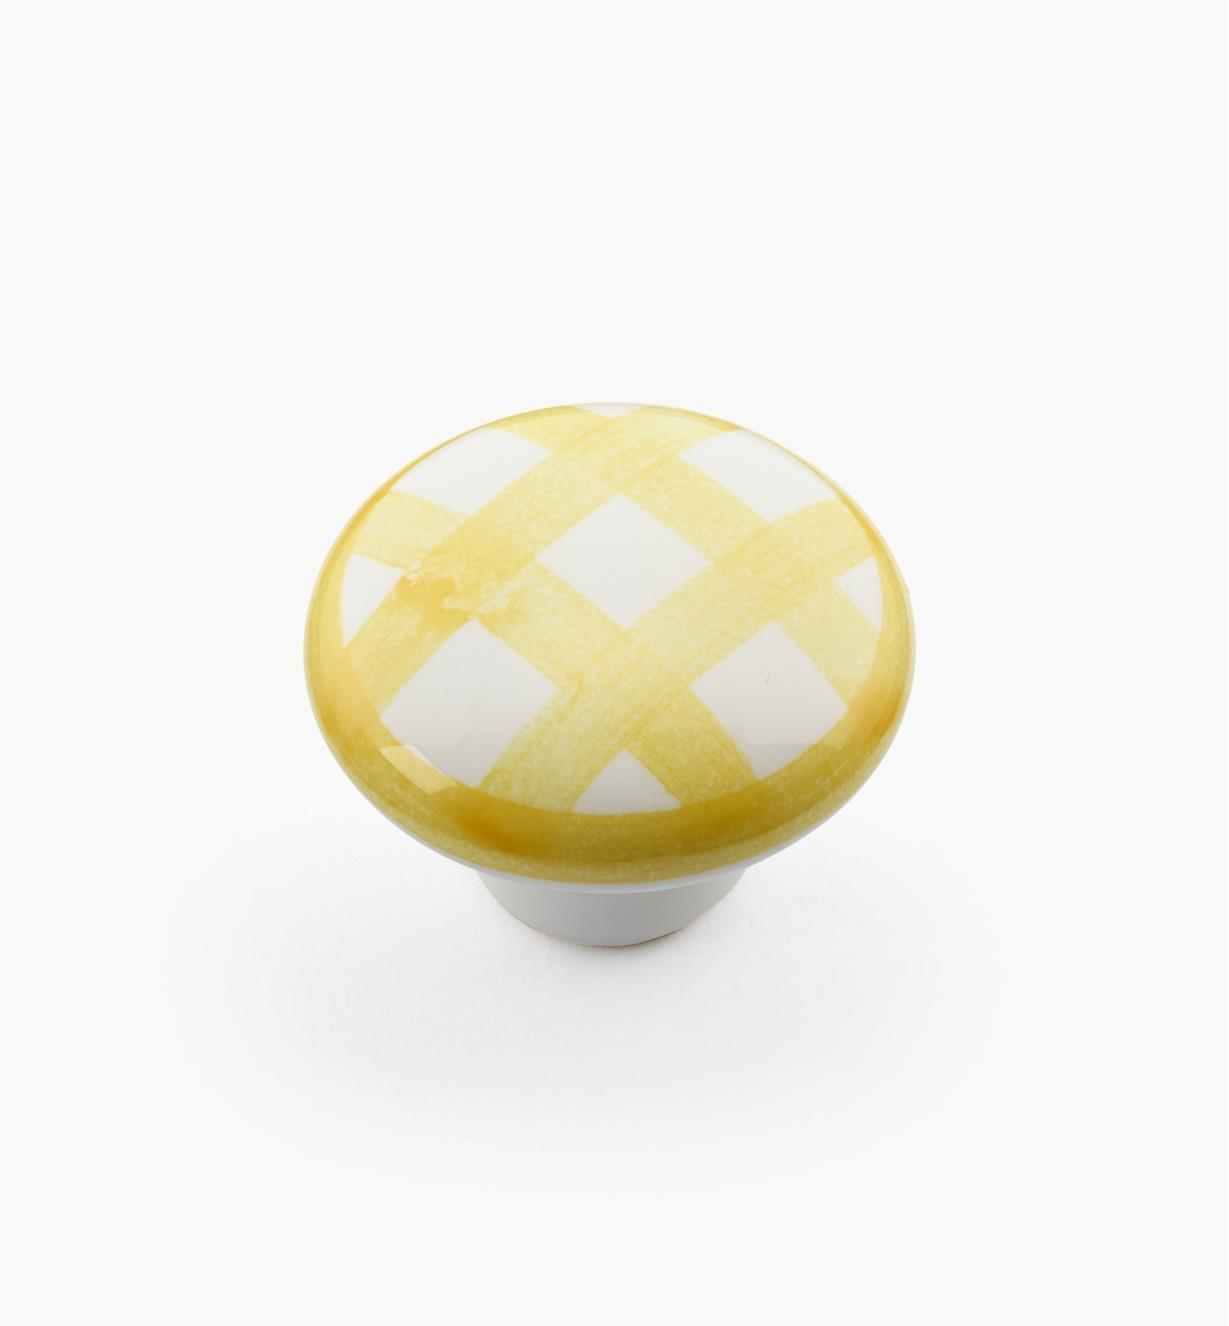 "00W5246 - 1 1/4"" x 7/8"" Yellow Checkered Knob"